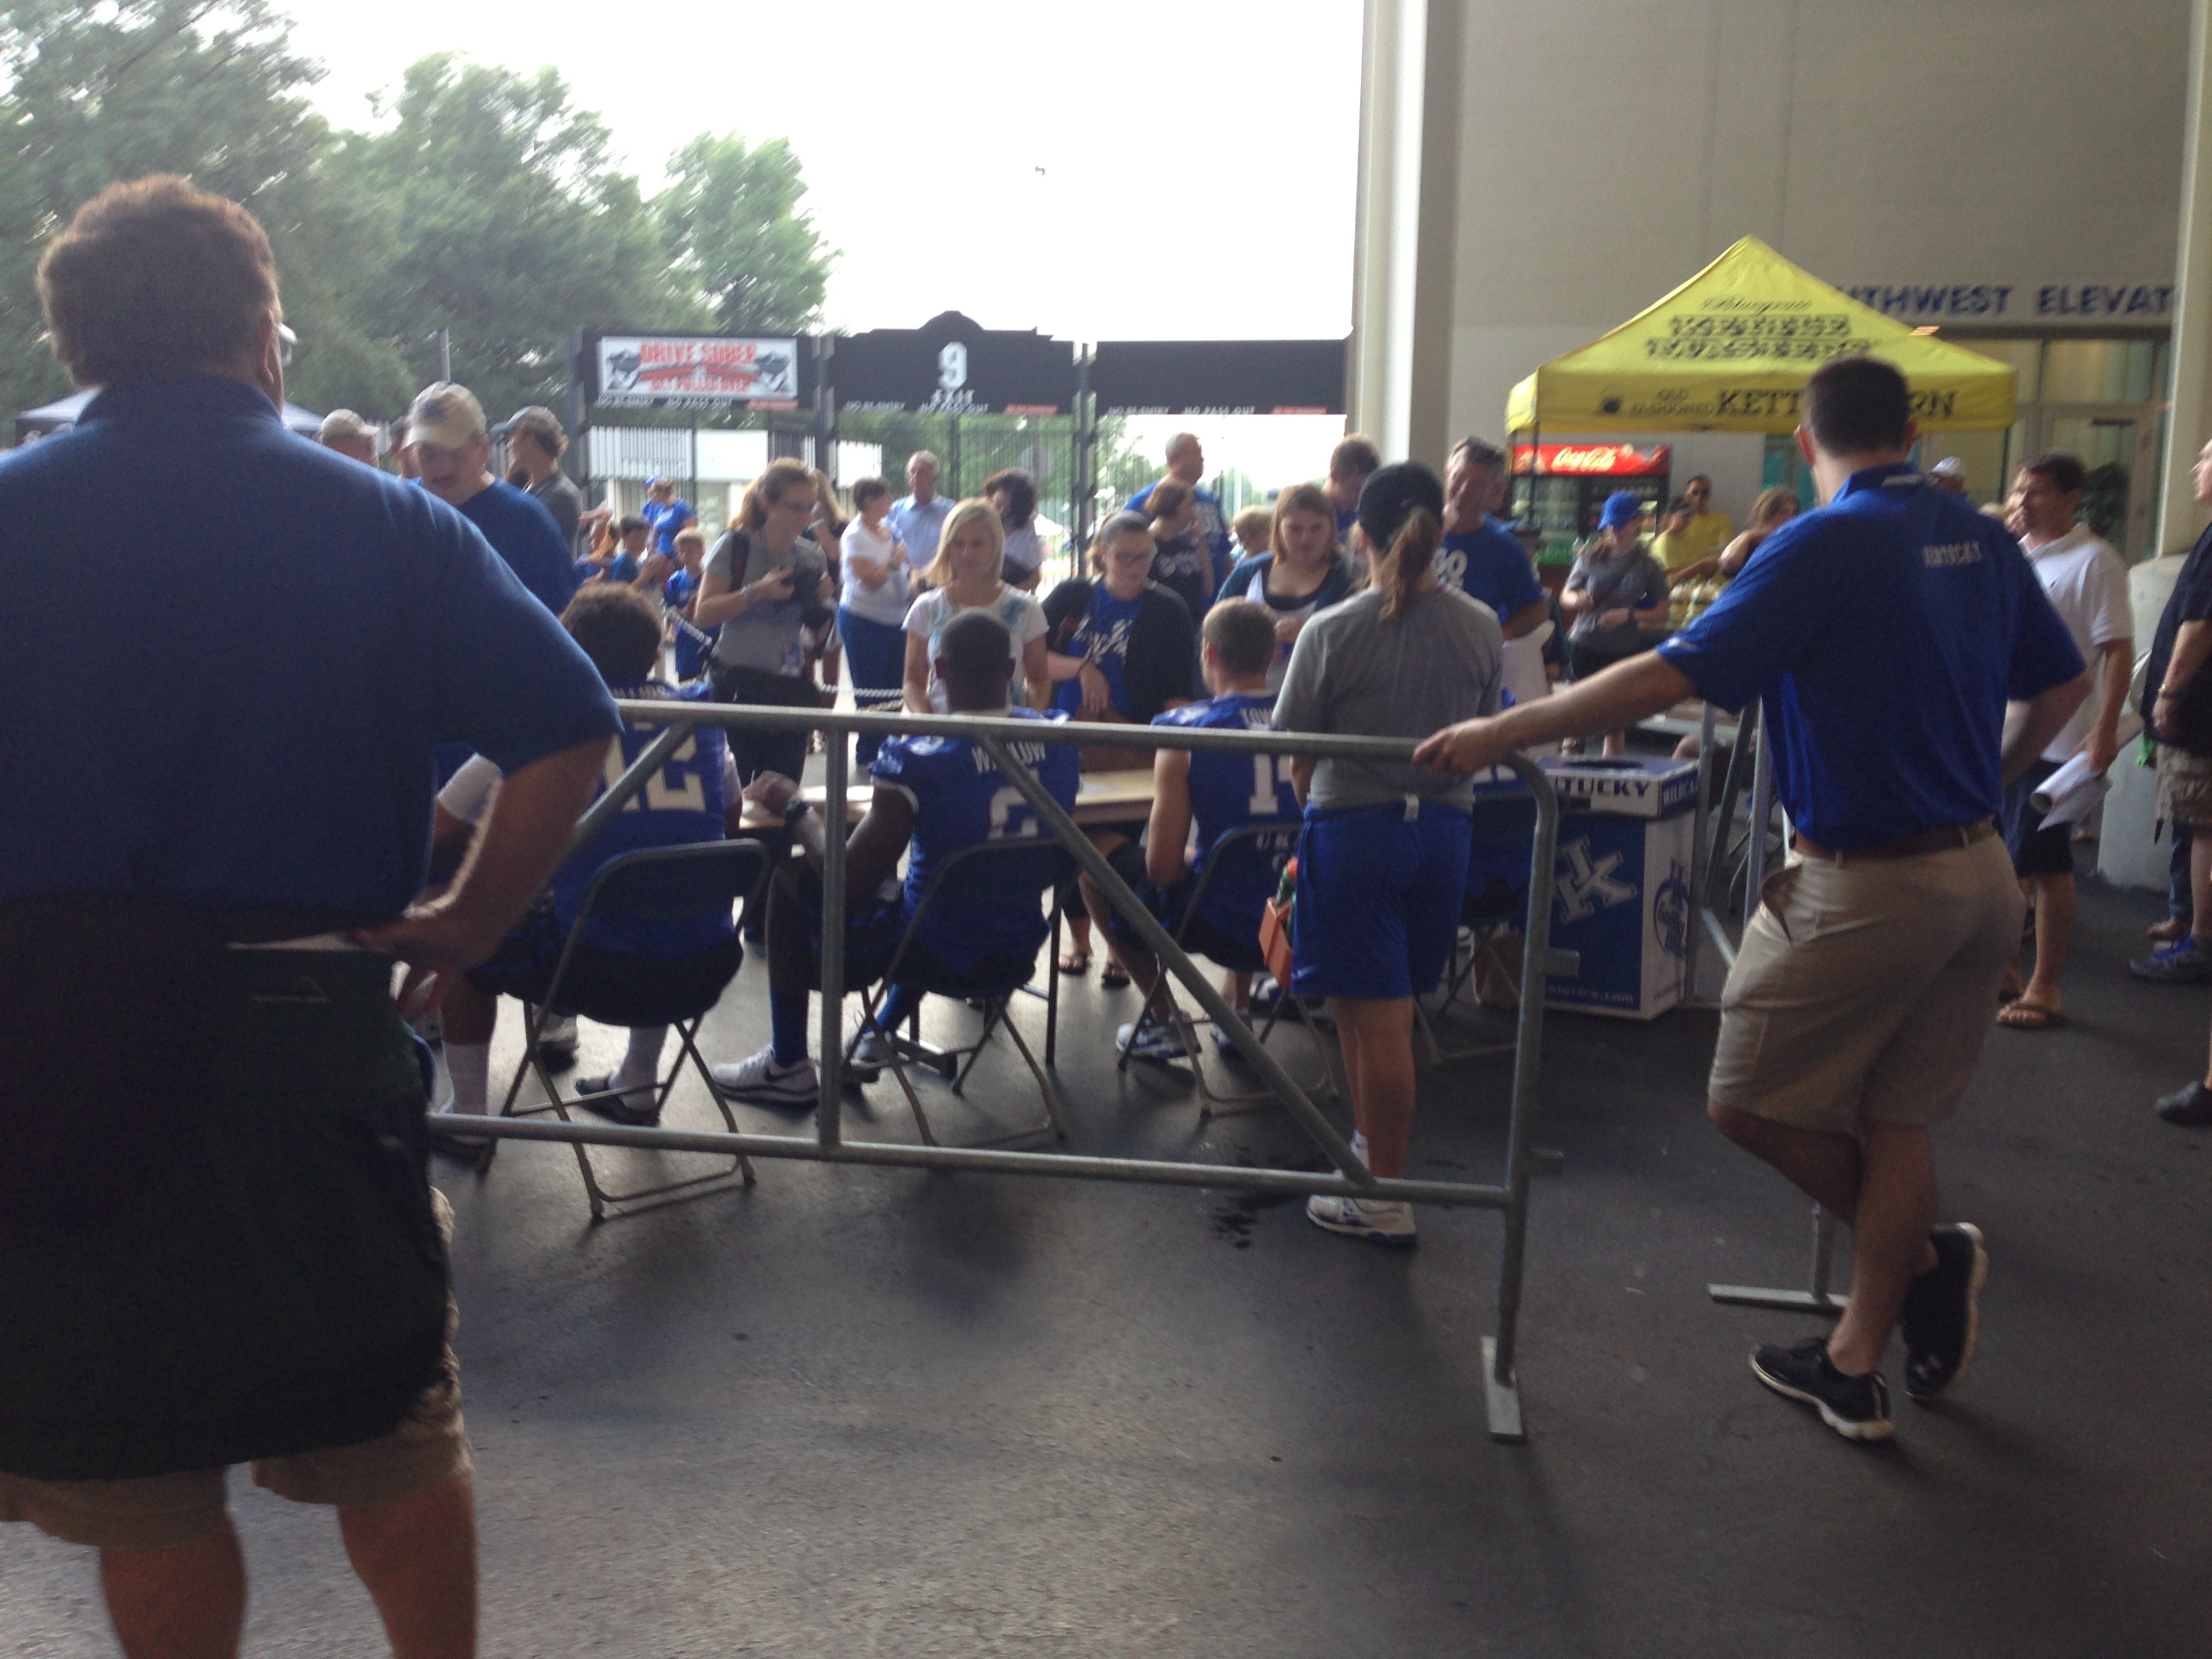 UK Football Fan Day